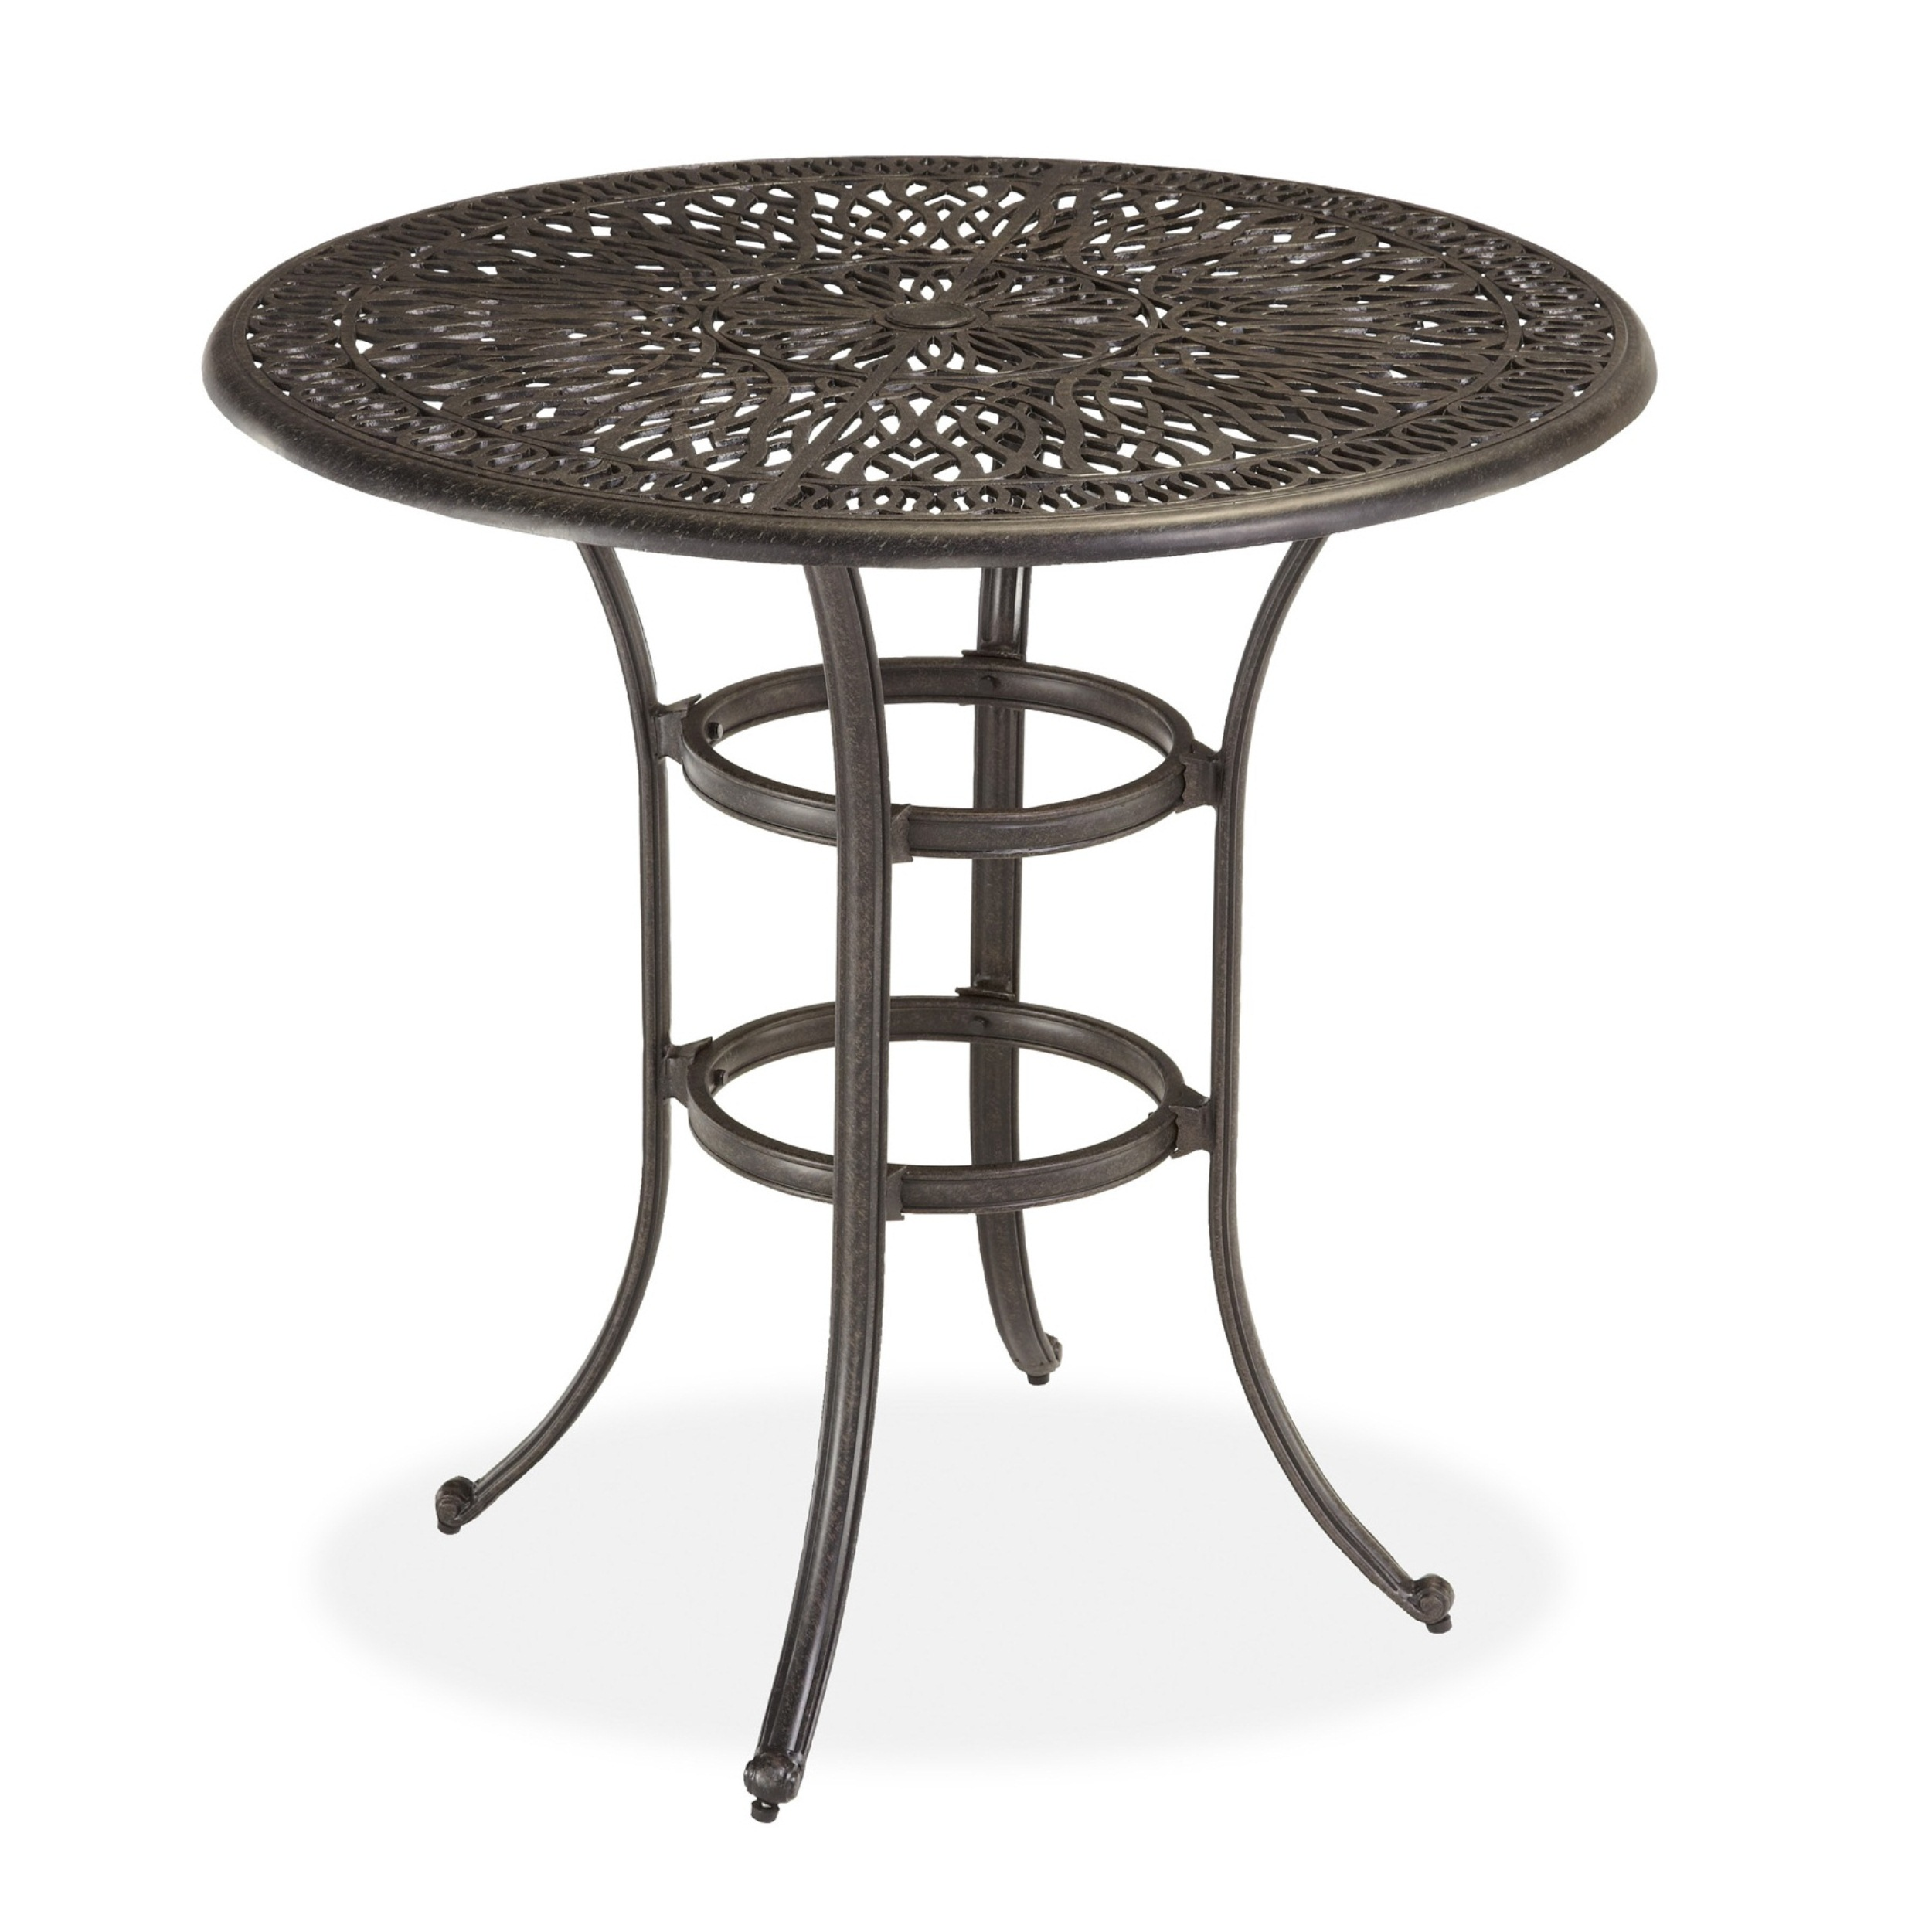 bistro table and chairs kmart green gaming chair home styles floral blossom outdoor living